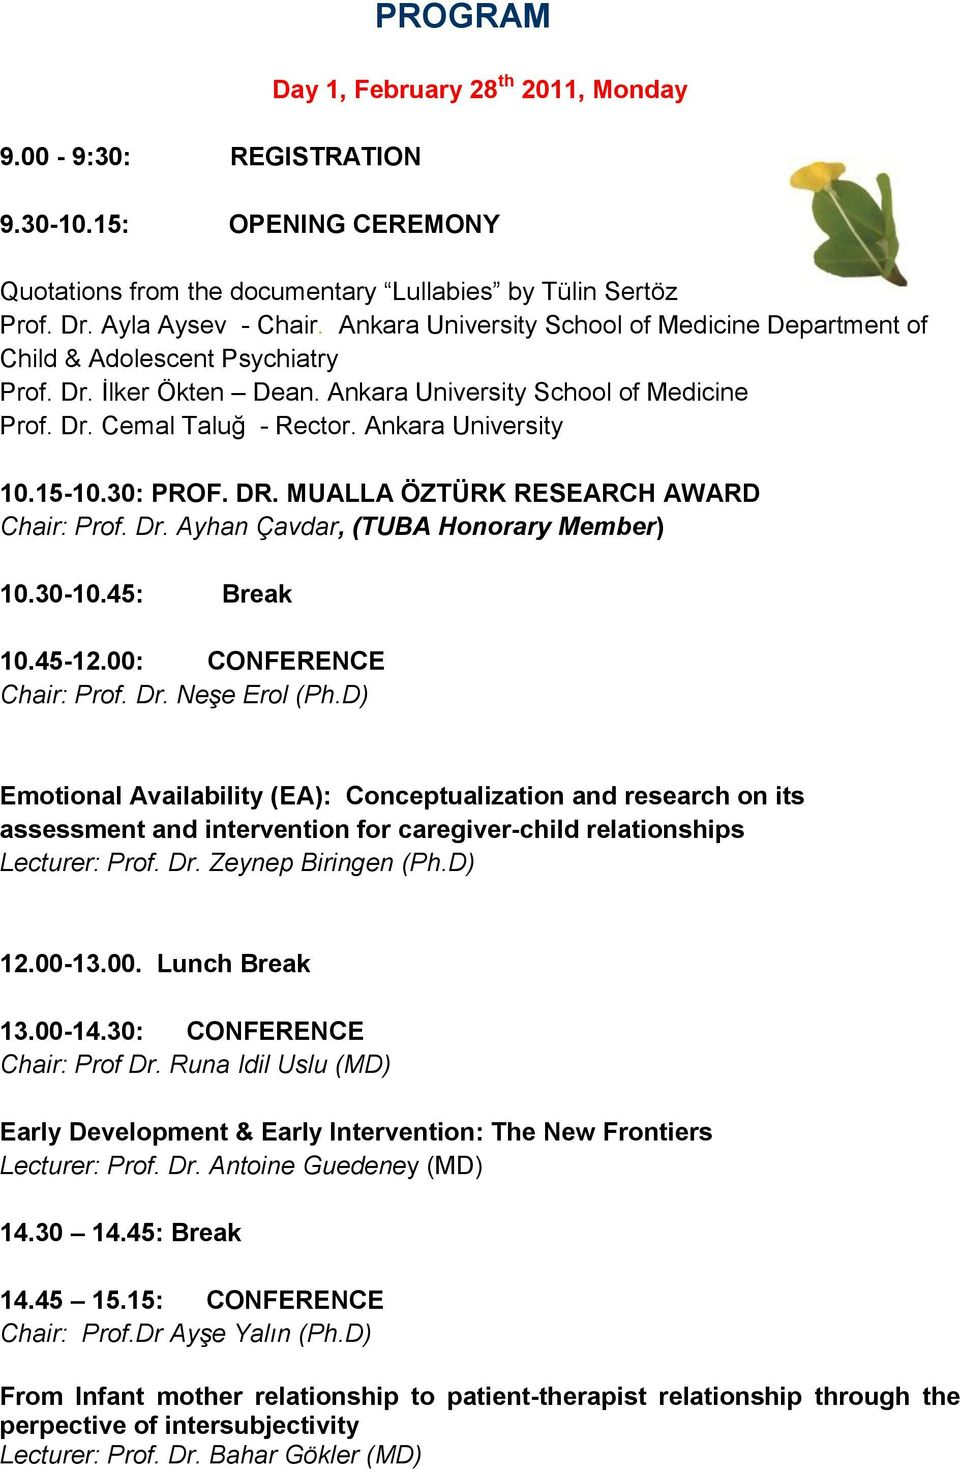 MUALLA ÖZTÜRK RESEARCH AWARD Chair: Prof. Dr. Ayhan Çavdar, (TUBA Honorary Member) 10.30-10.45: Break 10.45-12.00: CONFERENCE Chair: Prof. Dr. Neşe Erol (Ph.